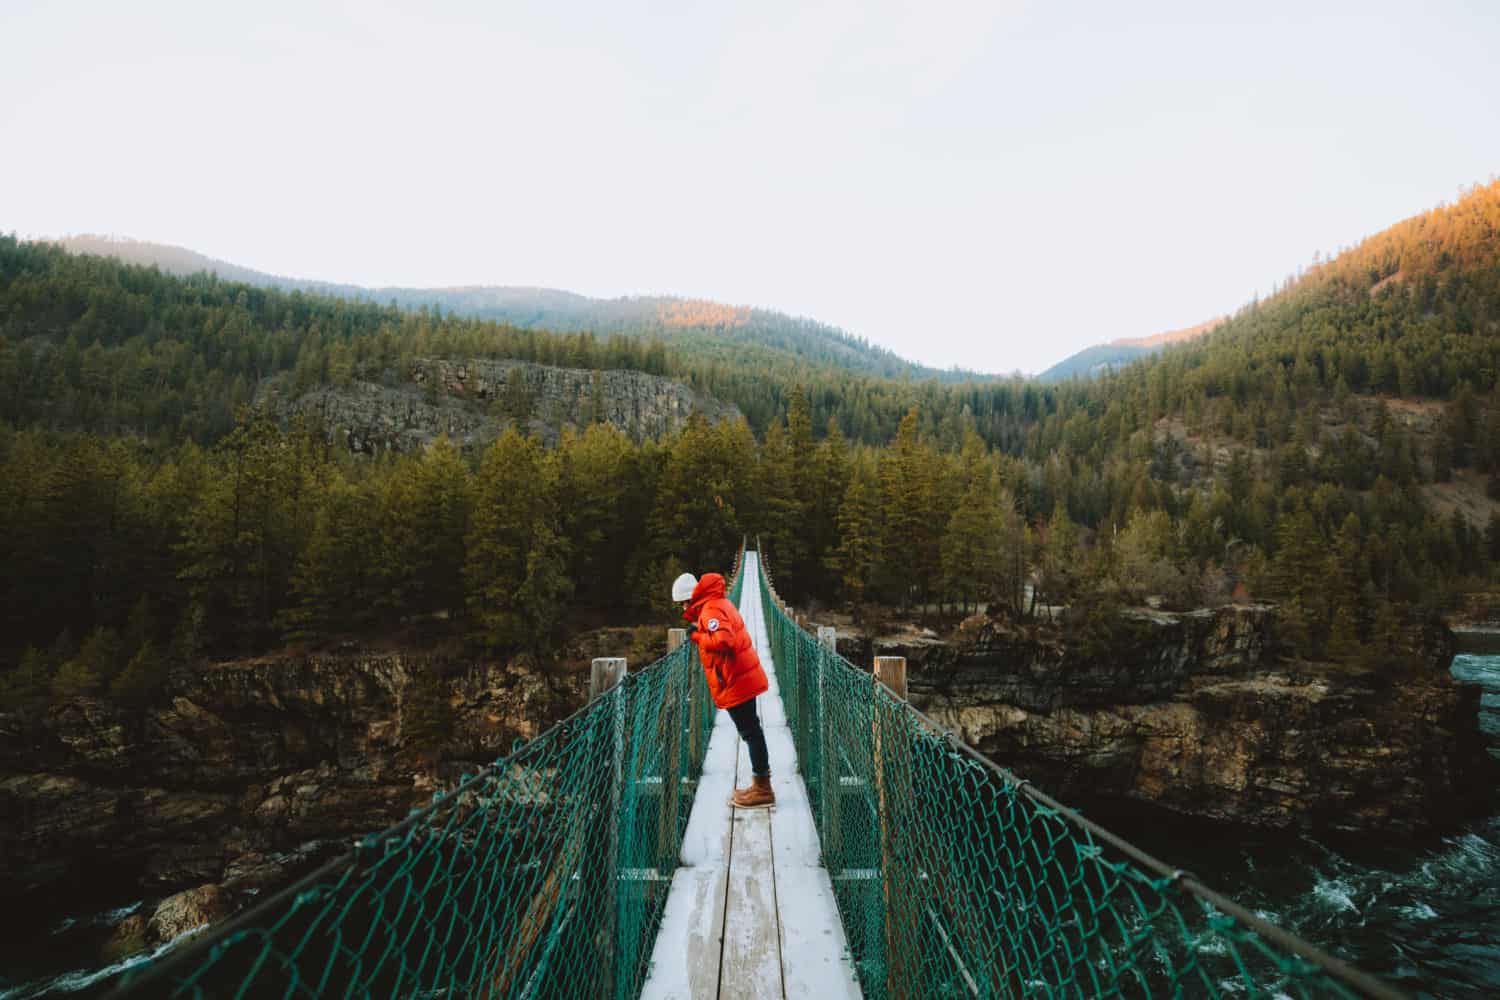 Things To Do In The Pacific Northwest - (Montana State)